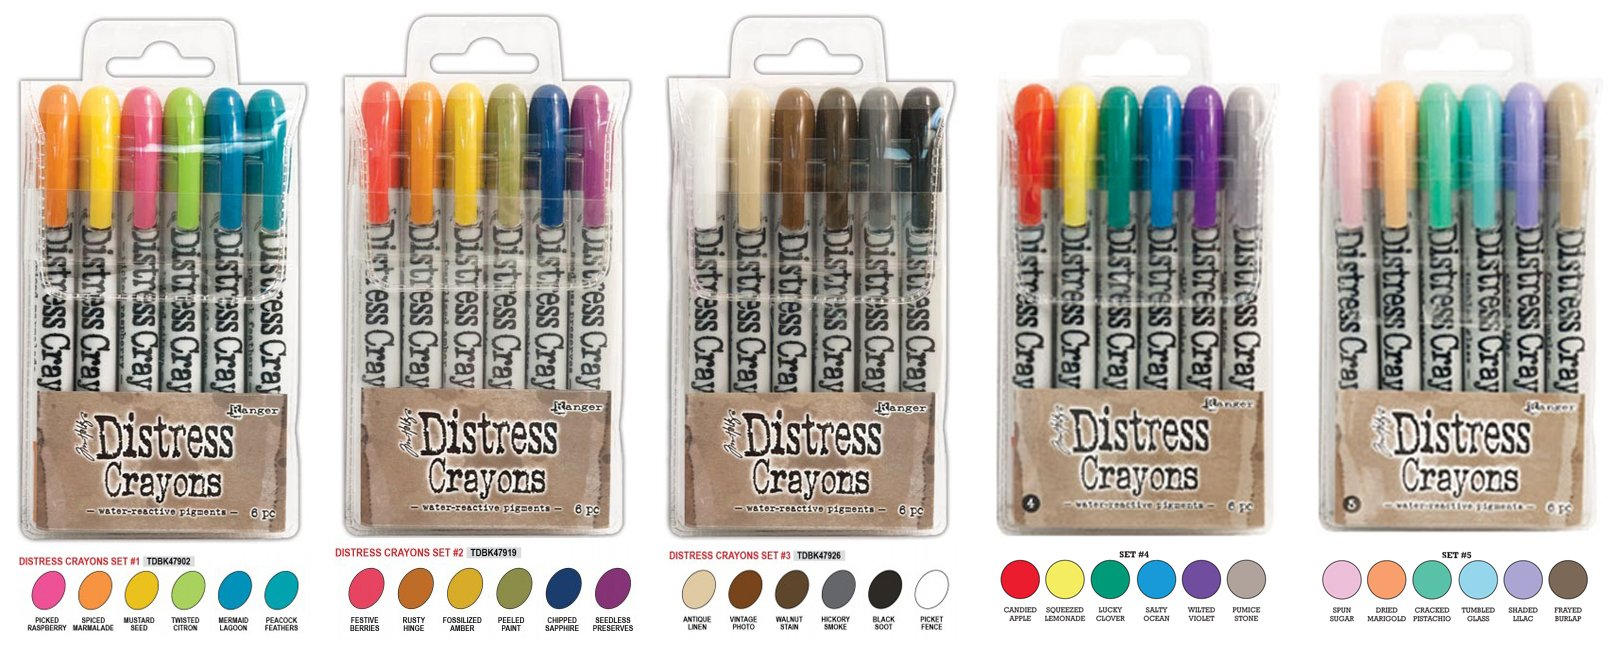 Ranger Tim Holtz Distress Crayons Bundle: Sets 1, 2, 3, 4, and 5 by Ranger Ink